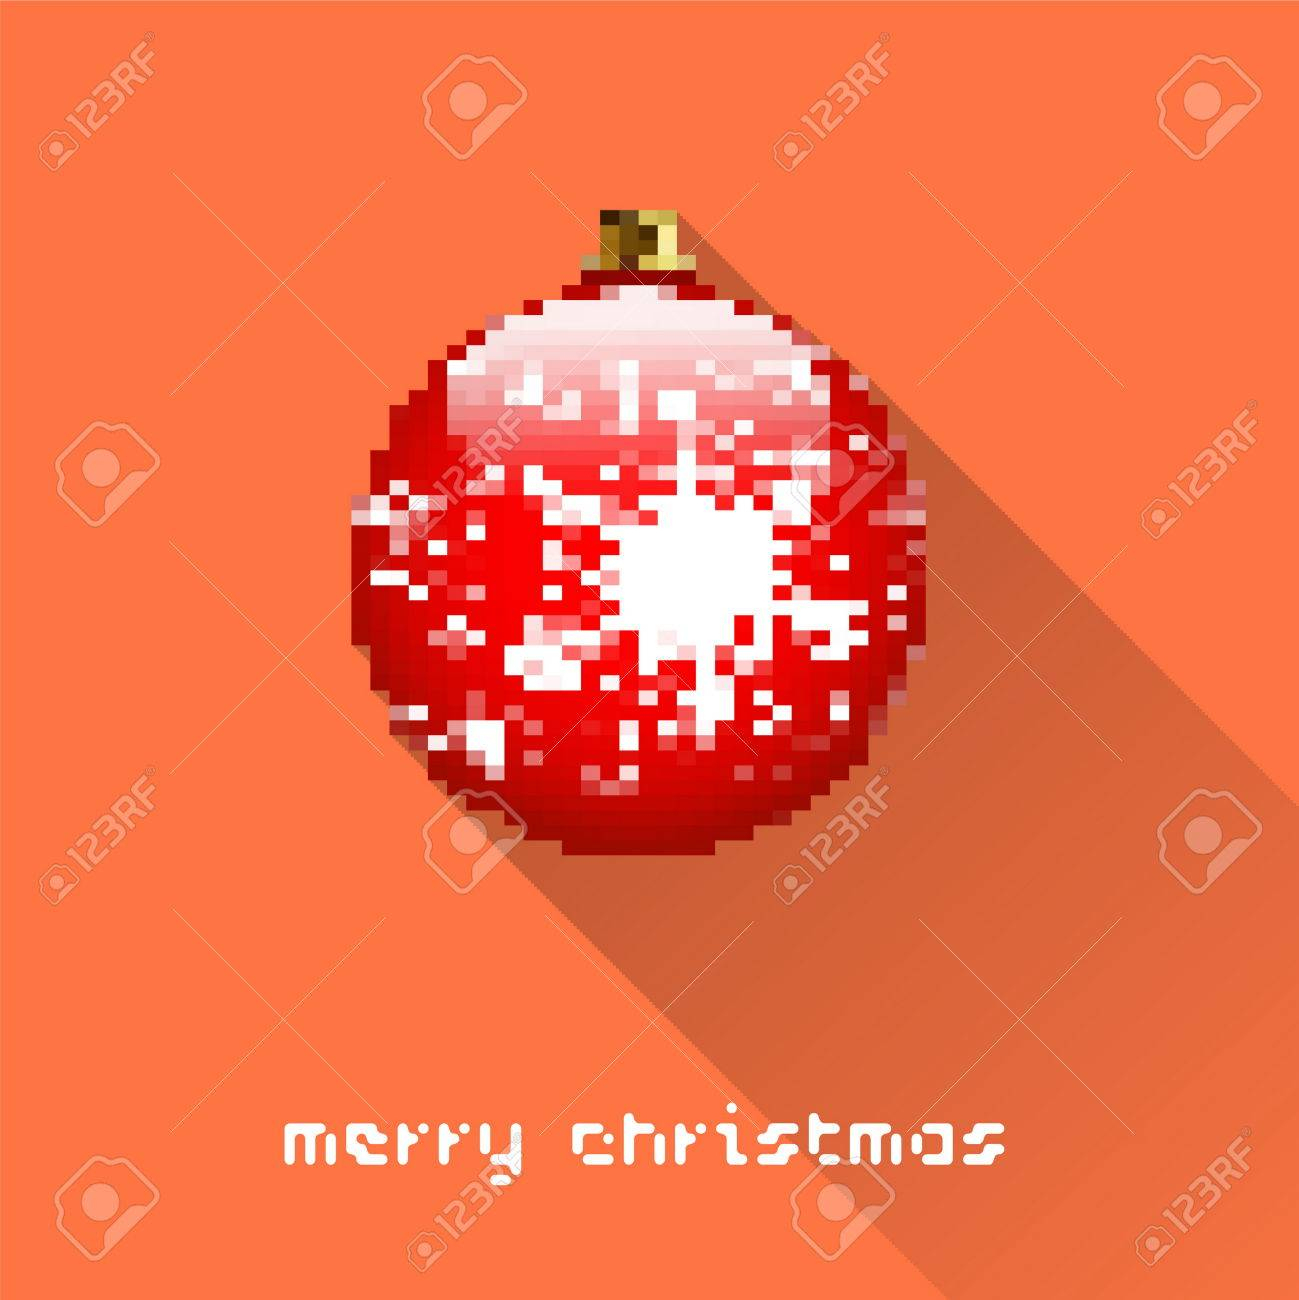 Merry Christmas Pixel Art Style Ball Poster For Party Or Greeting Card.  Vector Illustration concernant Pixel Art De Noël